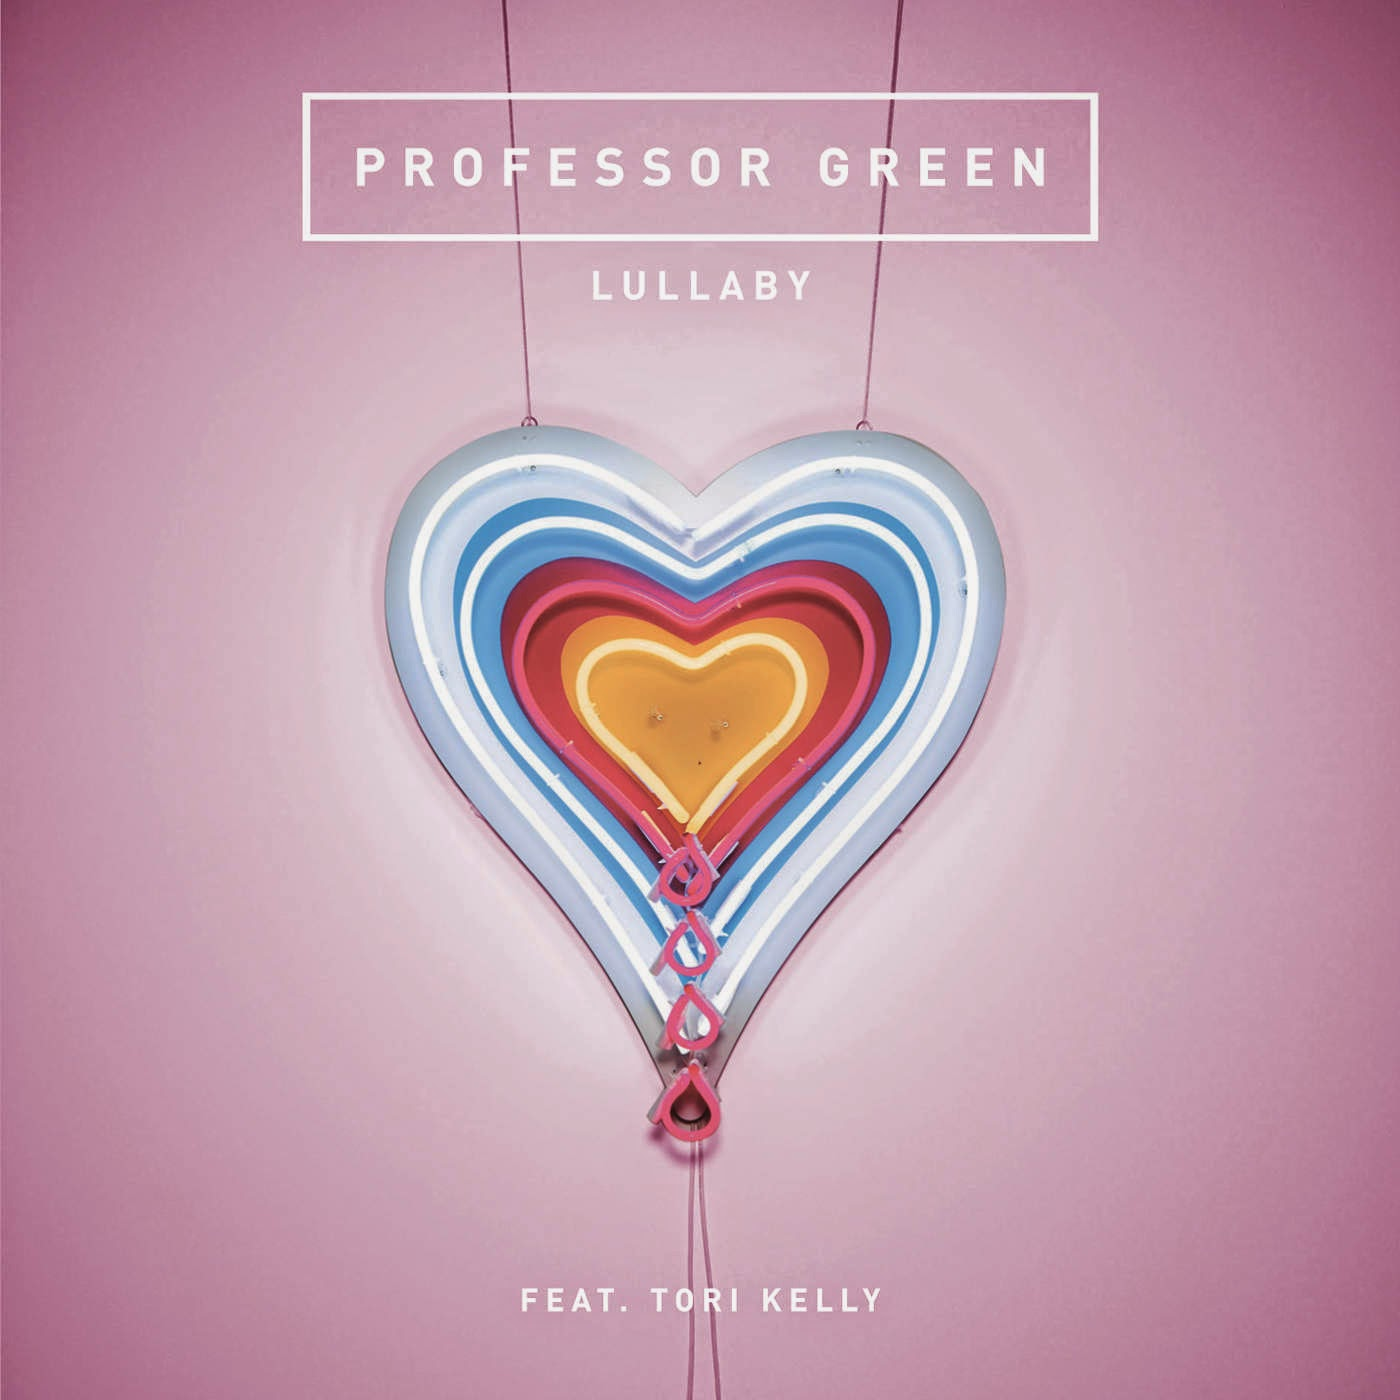 Professor Green - Lullaby (feat. Tori Kelly) - Single Cover